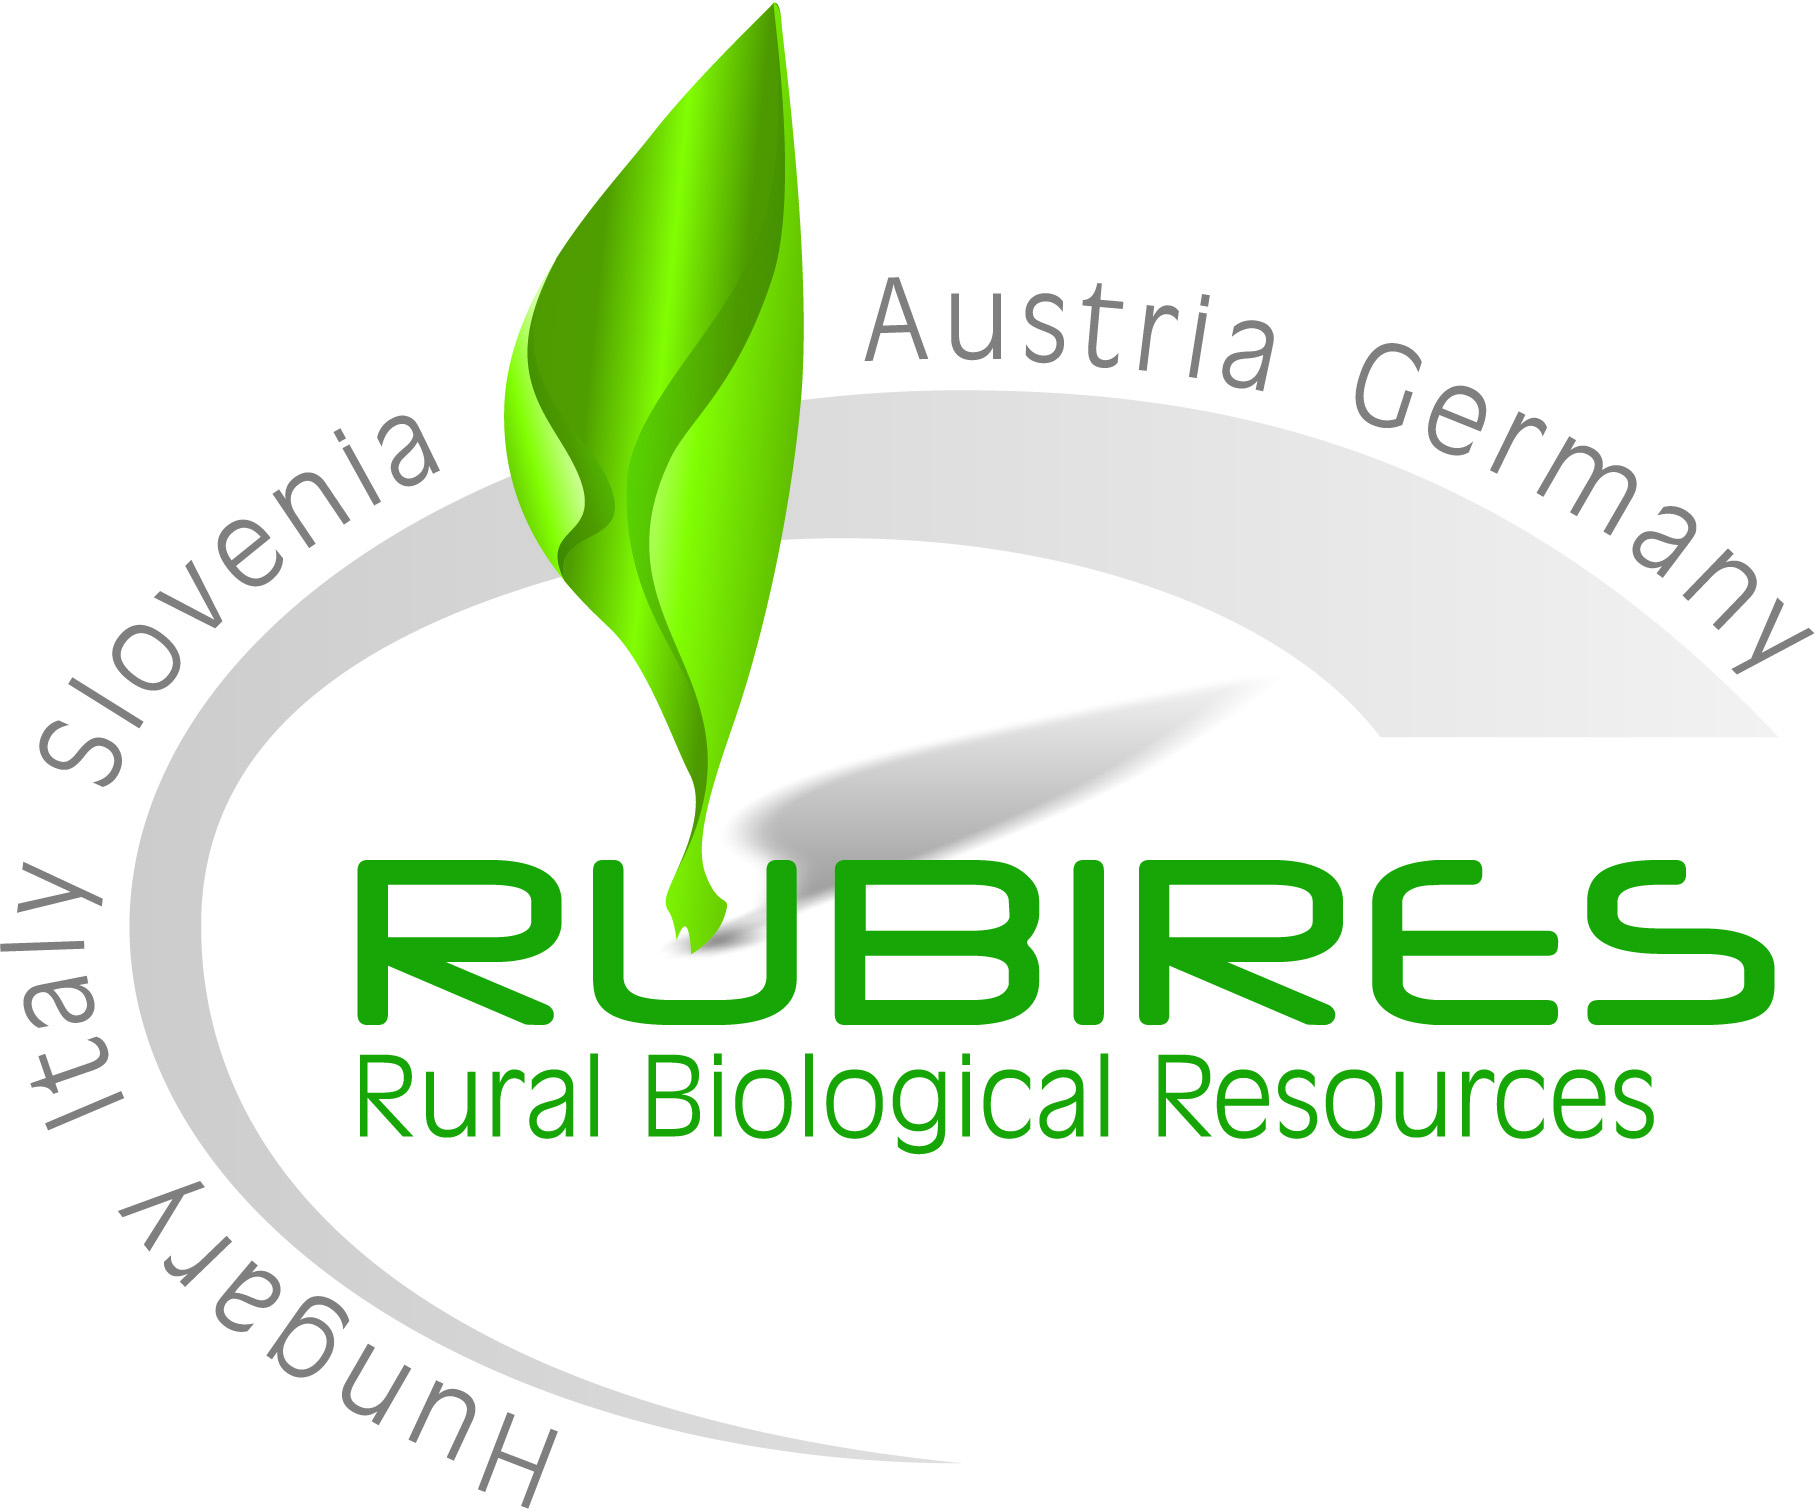 Rural Biological Resources – RUBIRES